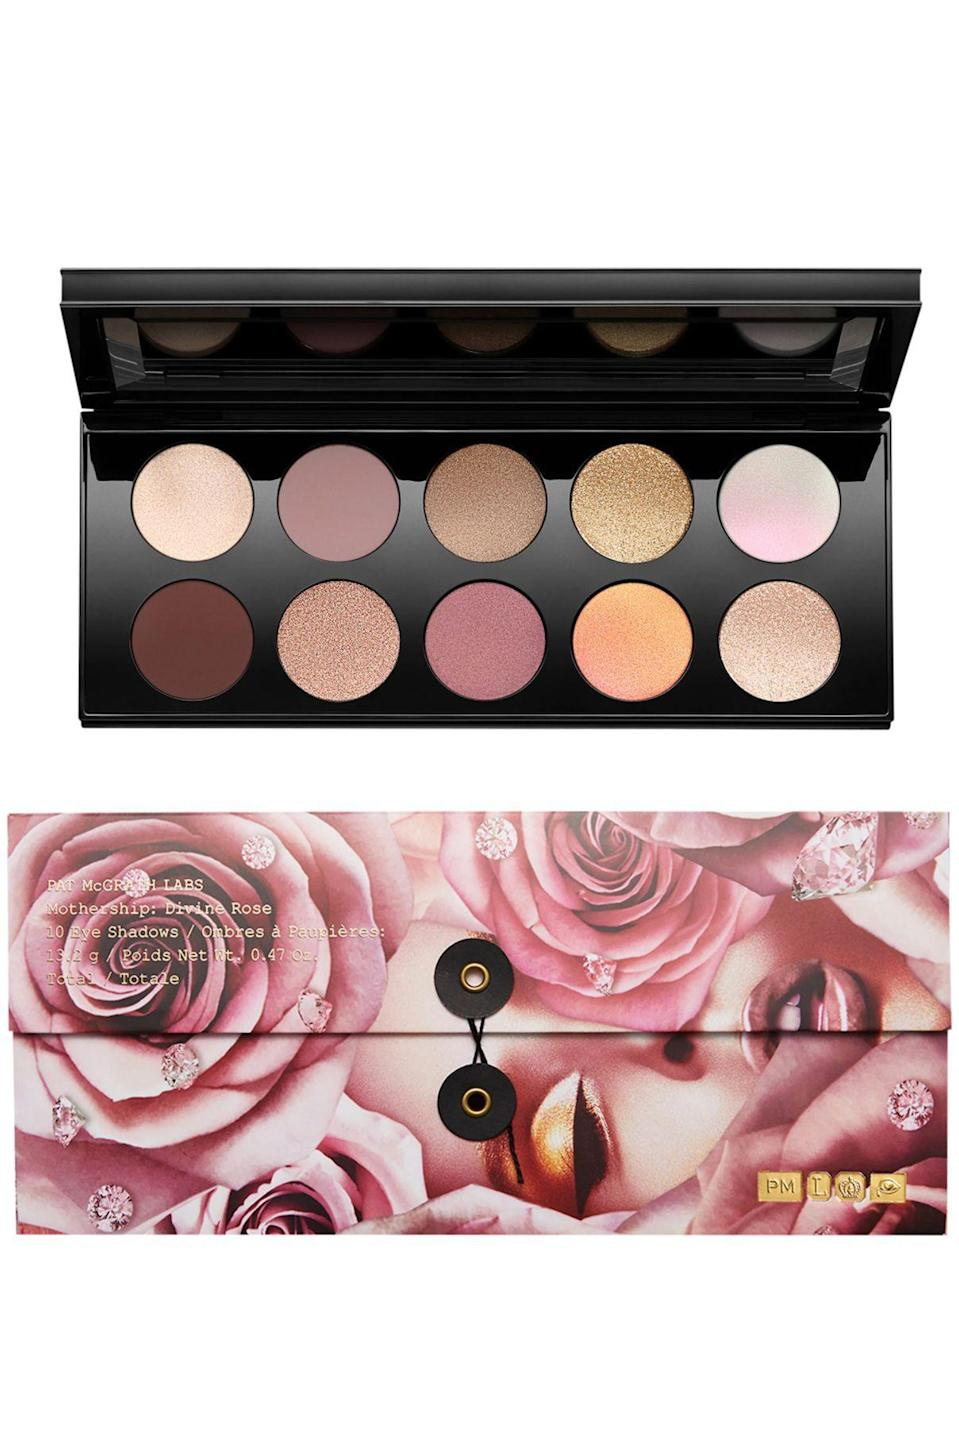 """<p><strong>Pat McGrath Labs</strong></p><p>sephora.com</p><p><a href=""""https://go.redirectingat.com?id=74968X1596630&url=https%3A%2F%2Fwww.sephora.com%2Fproduct%2Fpat-mcgrath-labs-mothership-vii-eyeshadow-palette-divine-rose-collection-P458276&sref=https%3A%2F%2Fwww.marieclaire.com%2Fbeauty%2Fg36077526%2Fsephora-spring-savings-event-2021%2F"""" rel=""""nofollow noopener"""" target=""""_blank"""" data-ylk=""""slk:SHOP IT"""" class=""""link rapid-noclick-resp"""">SHOP IT </a></p><p><strong><del>$125</del> $100 (20% off)</strong></p><p>Anyone who has really missed wearing eyeshadow should add Pat McGrath's palette to their cart. Whether you prefer a dramatic smoky eye or a no-makeup look, this palette has a look for everyone. </p>"""